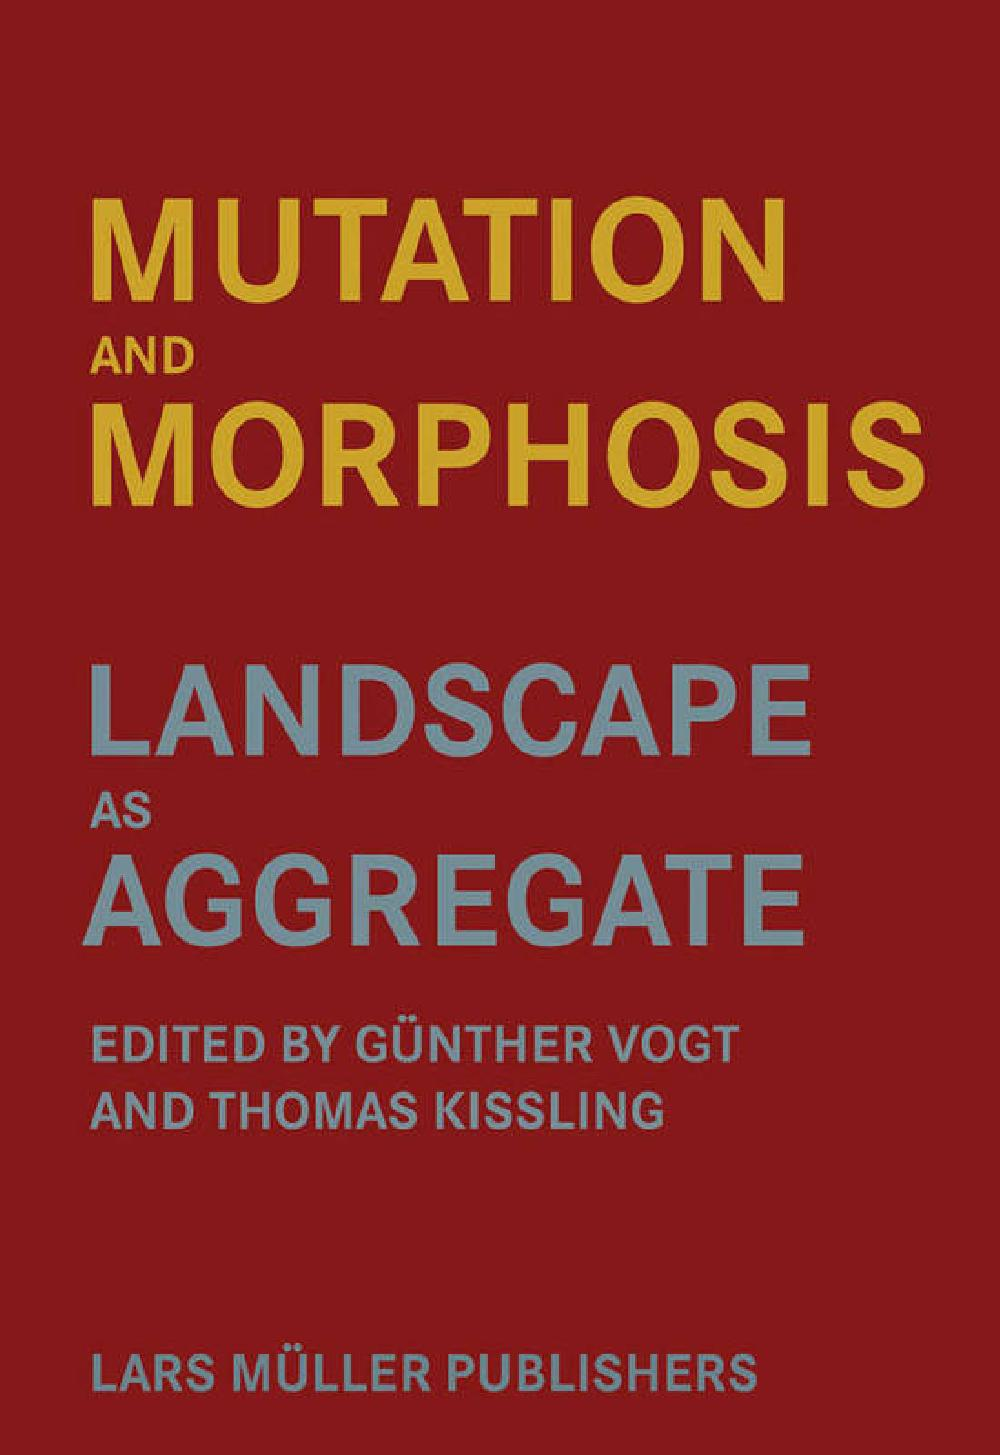 Mutation and morphosis - Landscape as aggregate